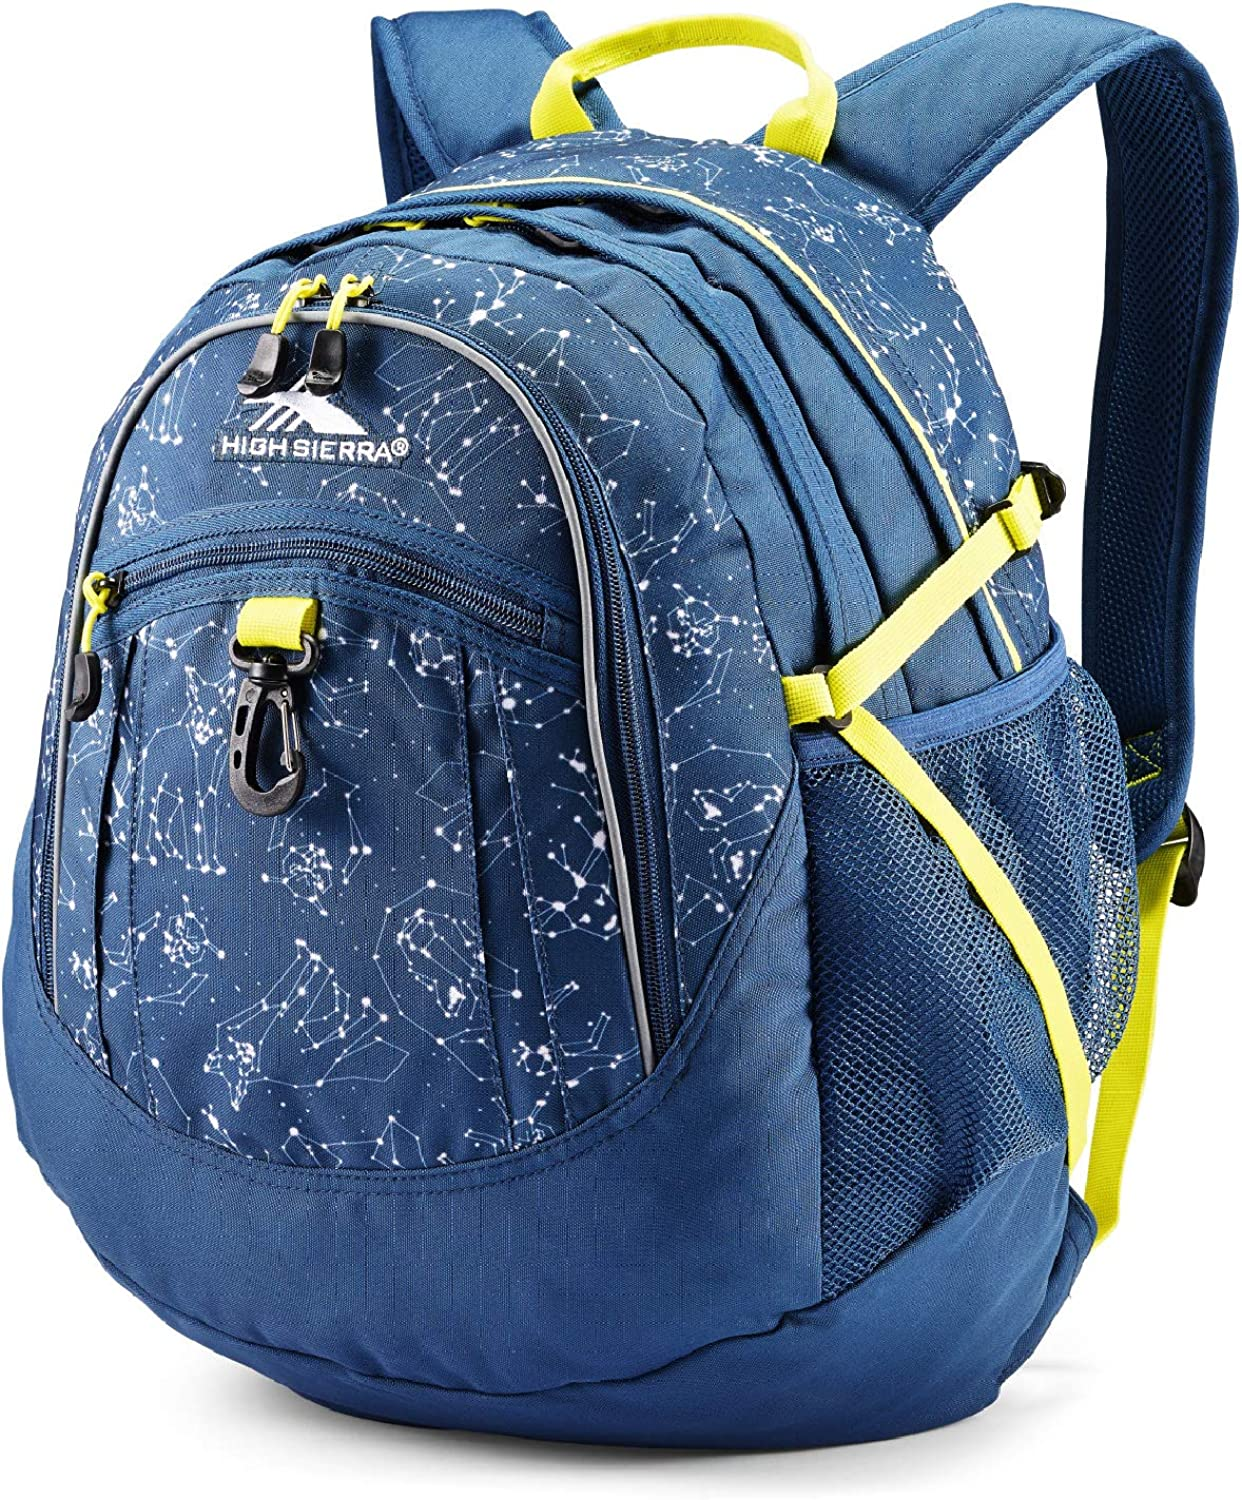 High Sierra Fatboy Backpack – Lightweight and Compact Student Backpack